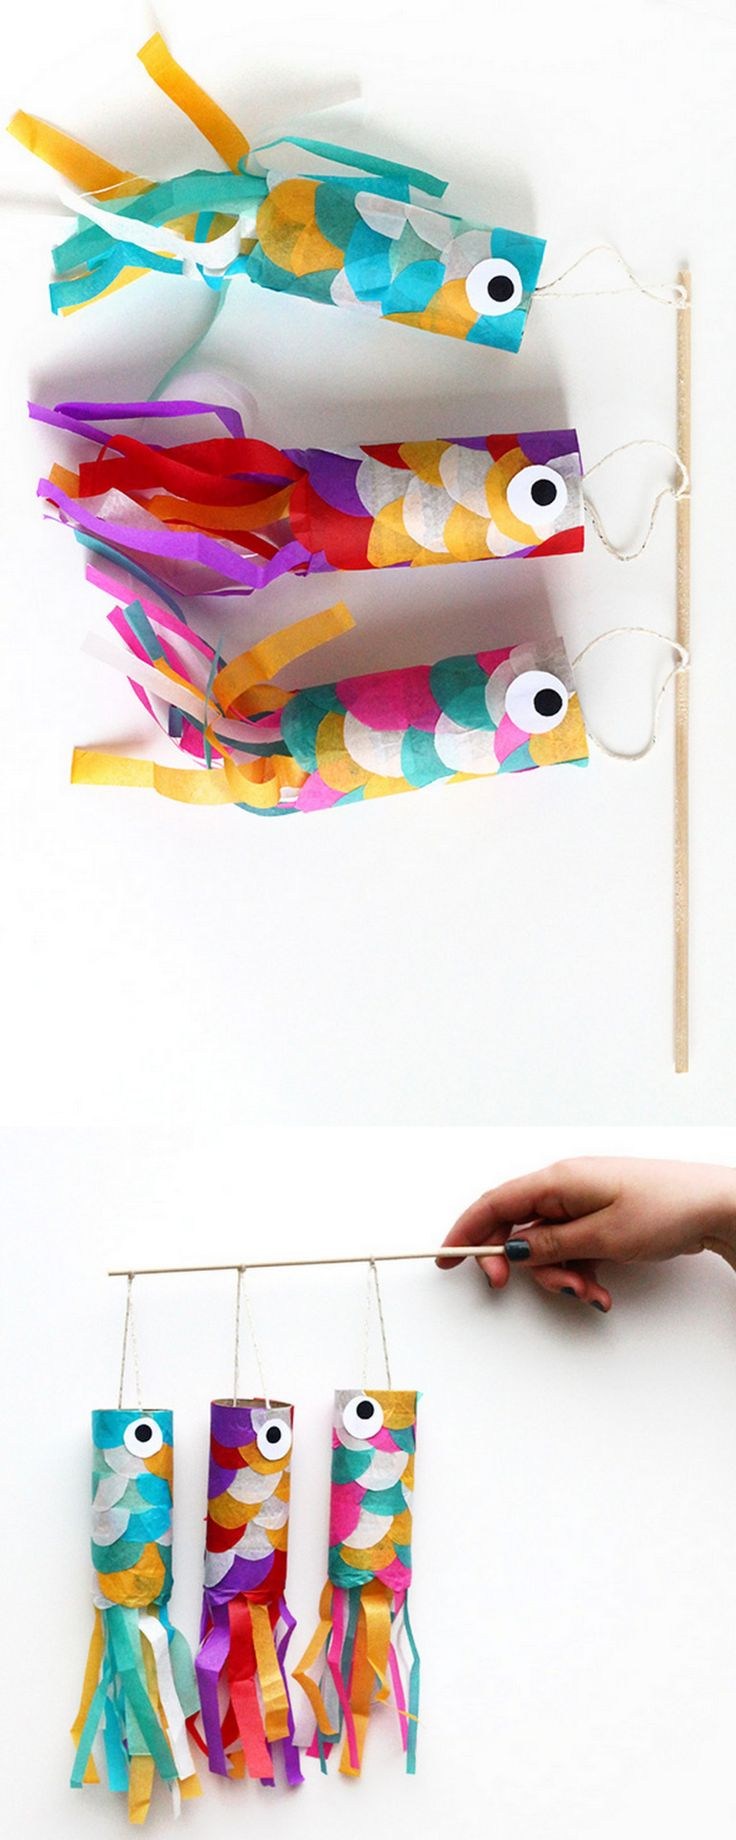 DIY Wind Sock Carp Tutorial from Squirrelly Minds.This is a super easy kids craft using toilet paper rolls and tissue paper to make DIY wind sock carps.